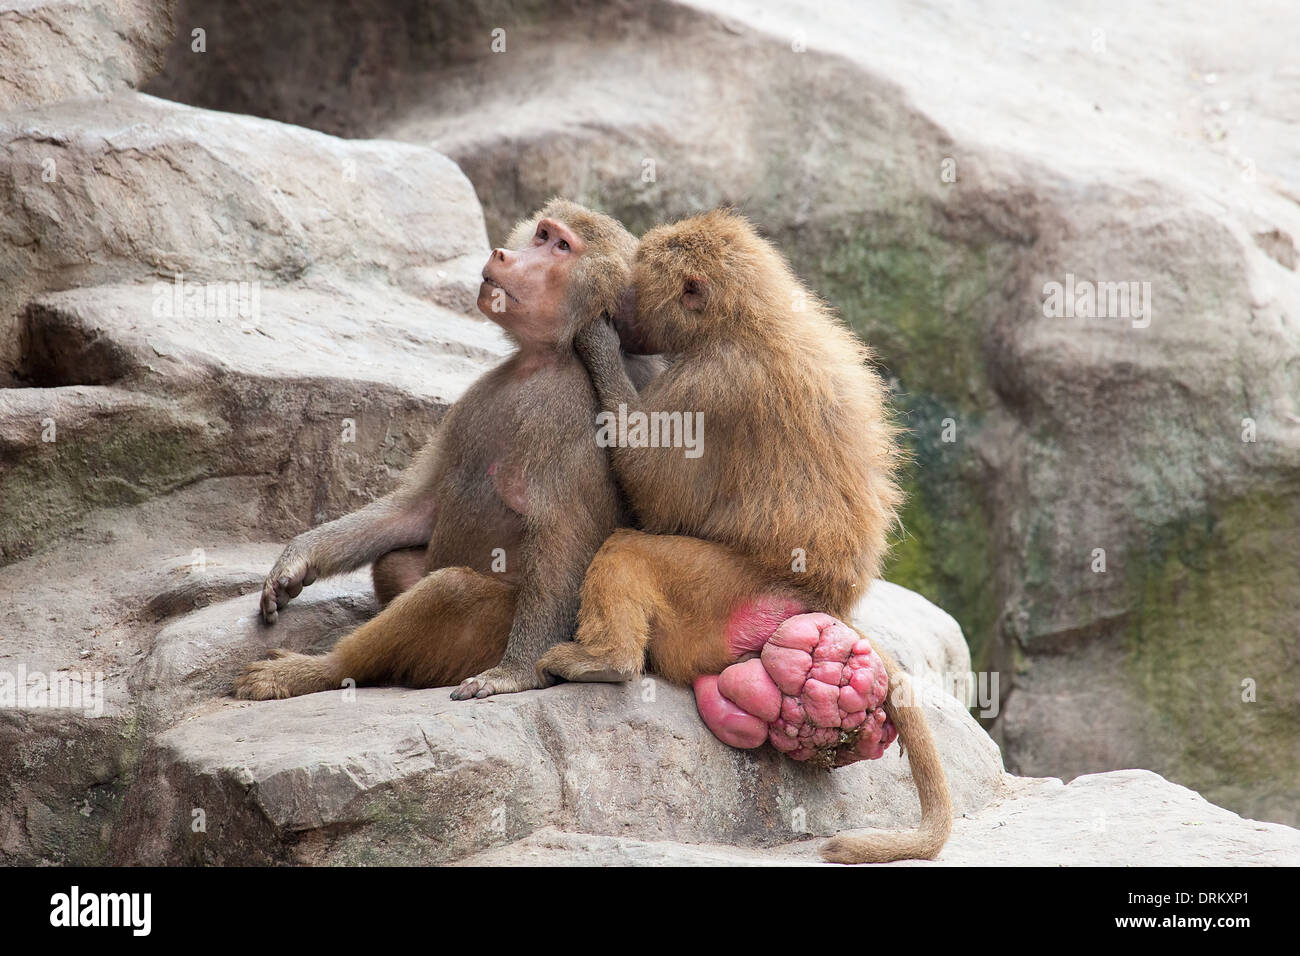 Baboons Engaging in Social Grooming - Stock Image